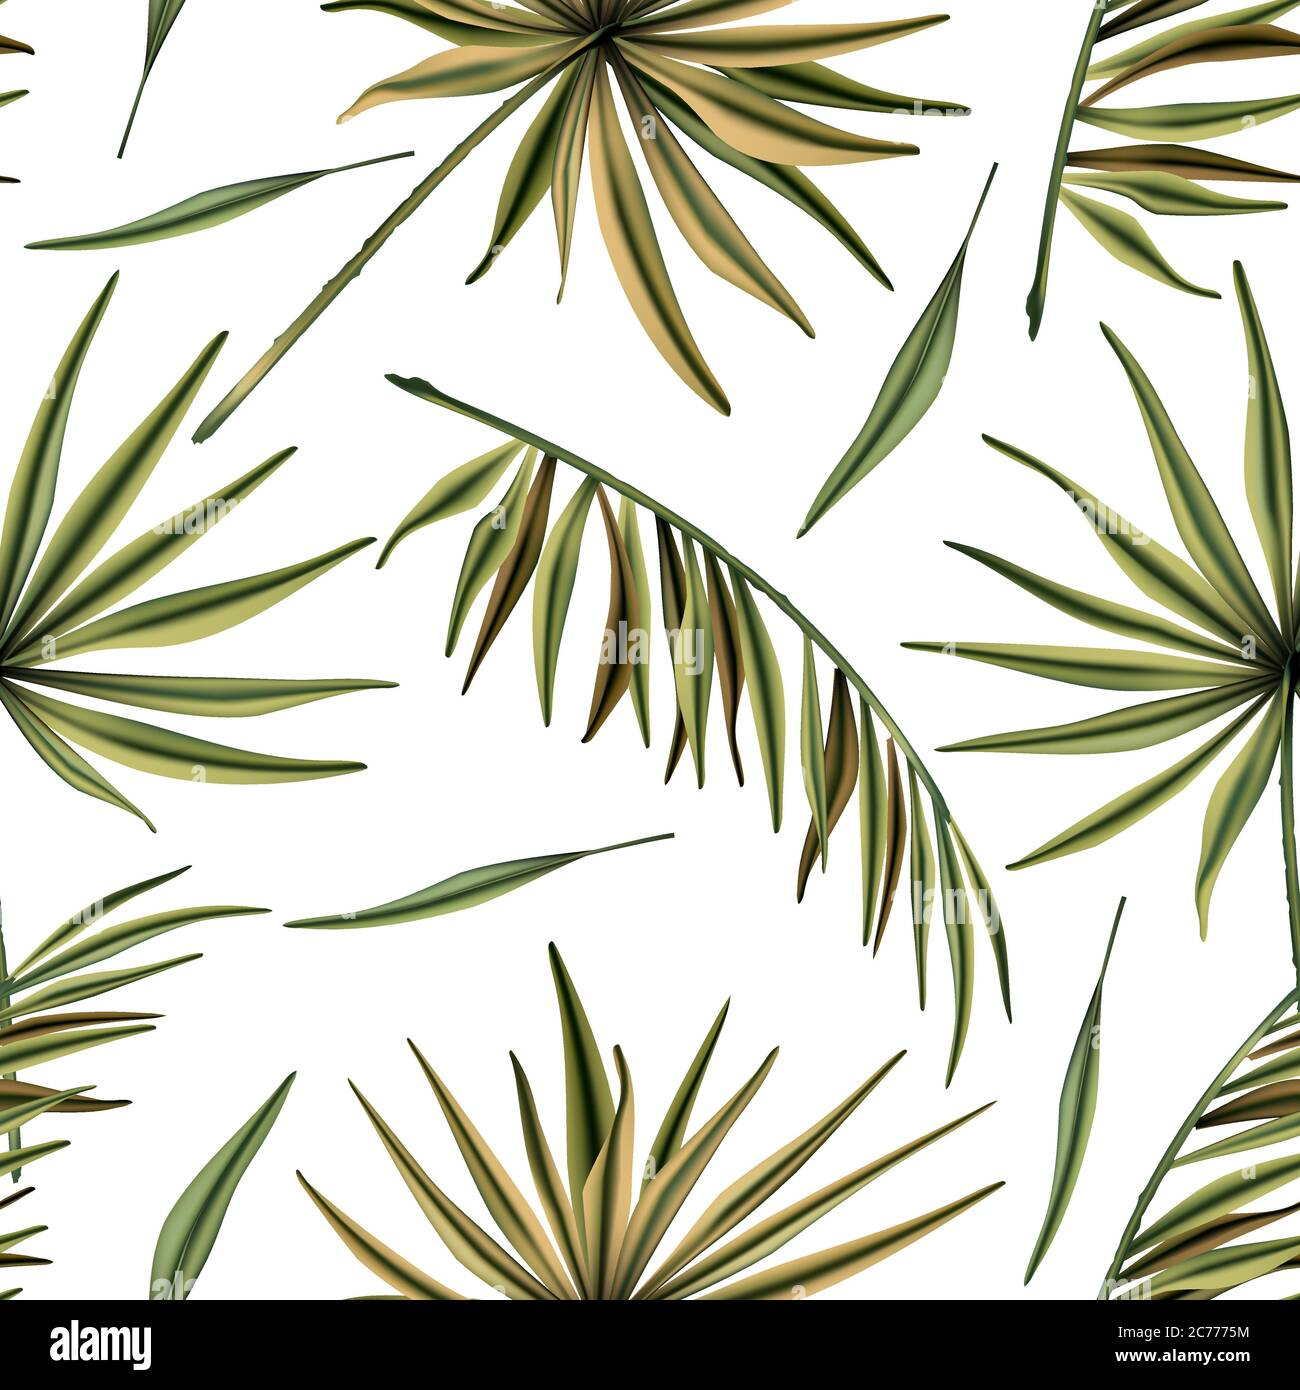 Realistic Colorful Tropical Palm Leaves Vector Seamless Pattern Jungle Botanical Summer Background Exotic Green Nature Wallpaper Stock Vector Image Art Alamy Download tropical wallpaper stock vectors. https www alamy com realistic colorful tropical palm leaves vector seamless pattern jungle botanical summer background exotic green nature wallpaper image365879632 html